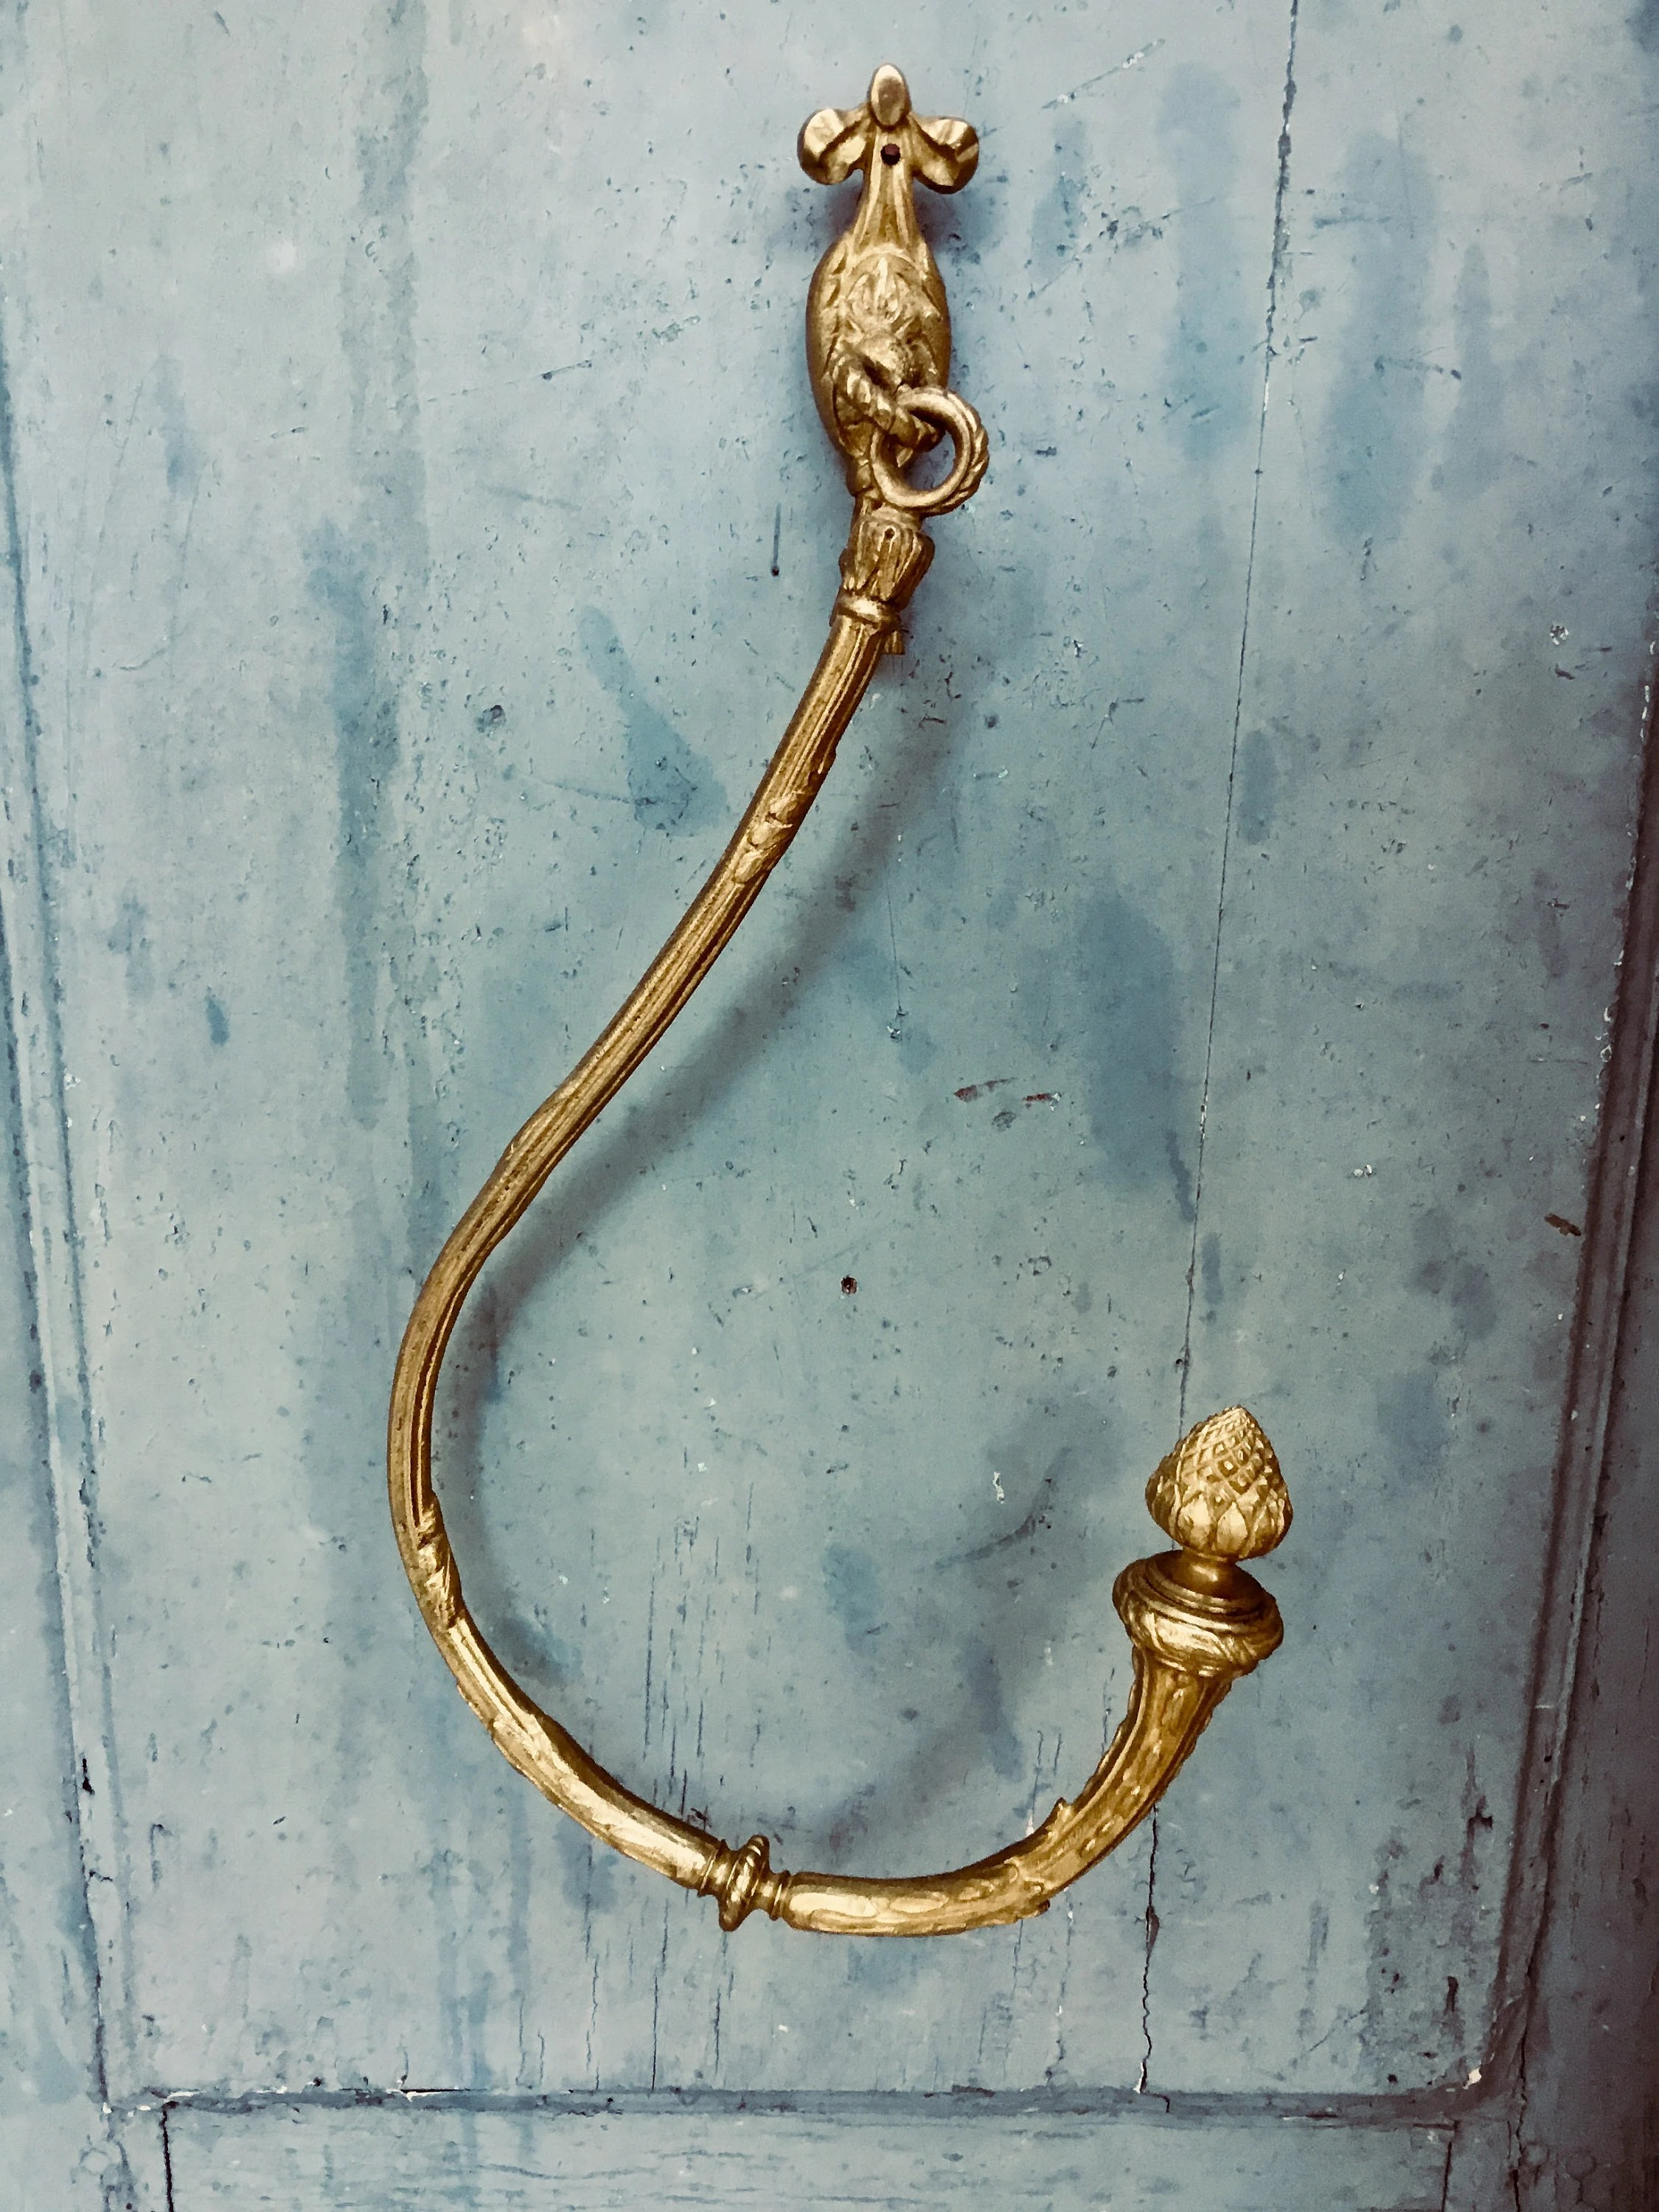 Antique Bronze Curtain Tie Backs Large Curtain Tie Backs Beautiful Antique Swinging Gilt Bronze